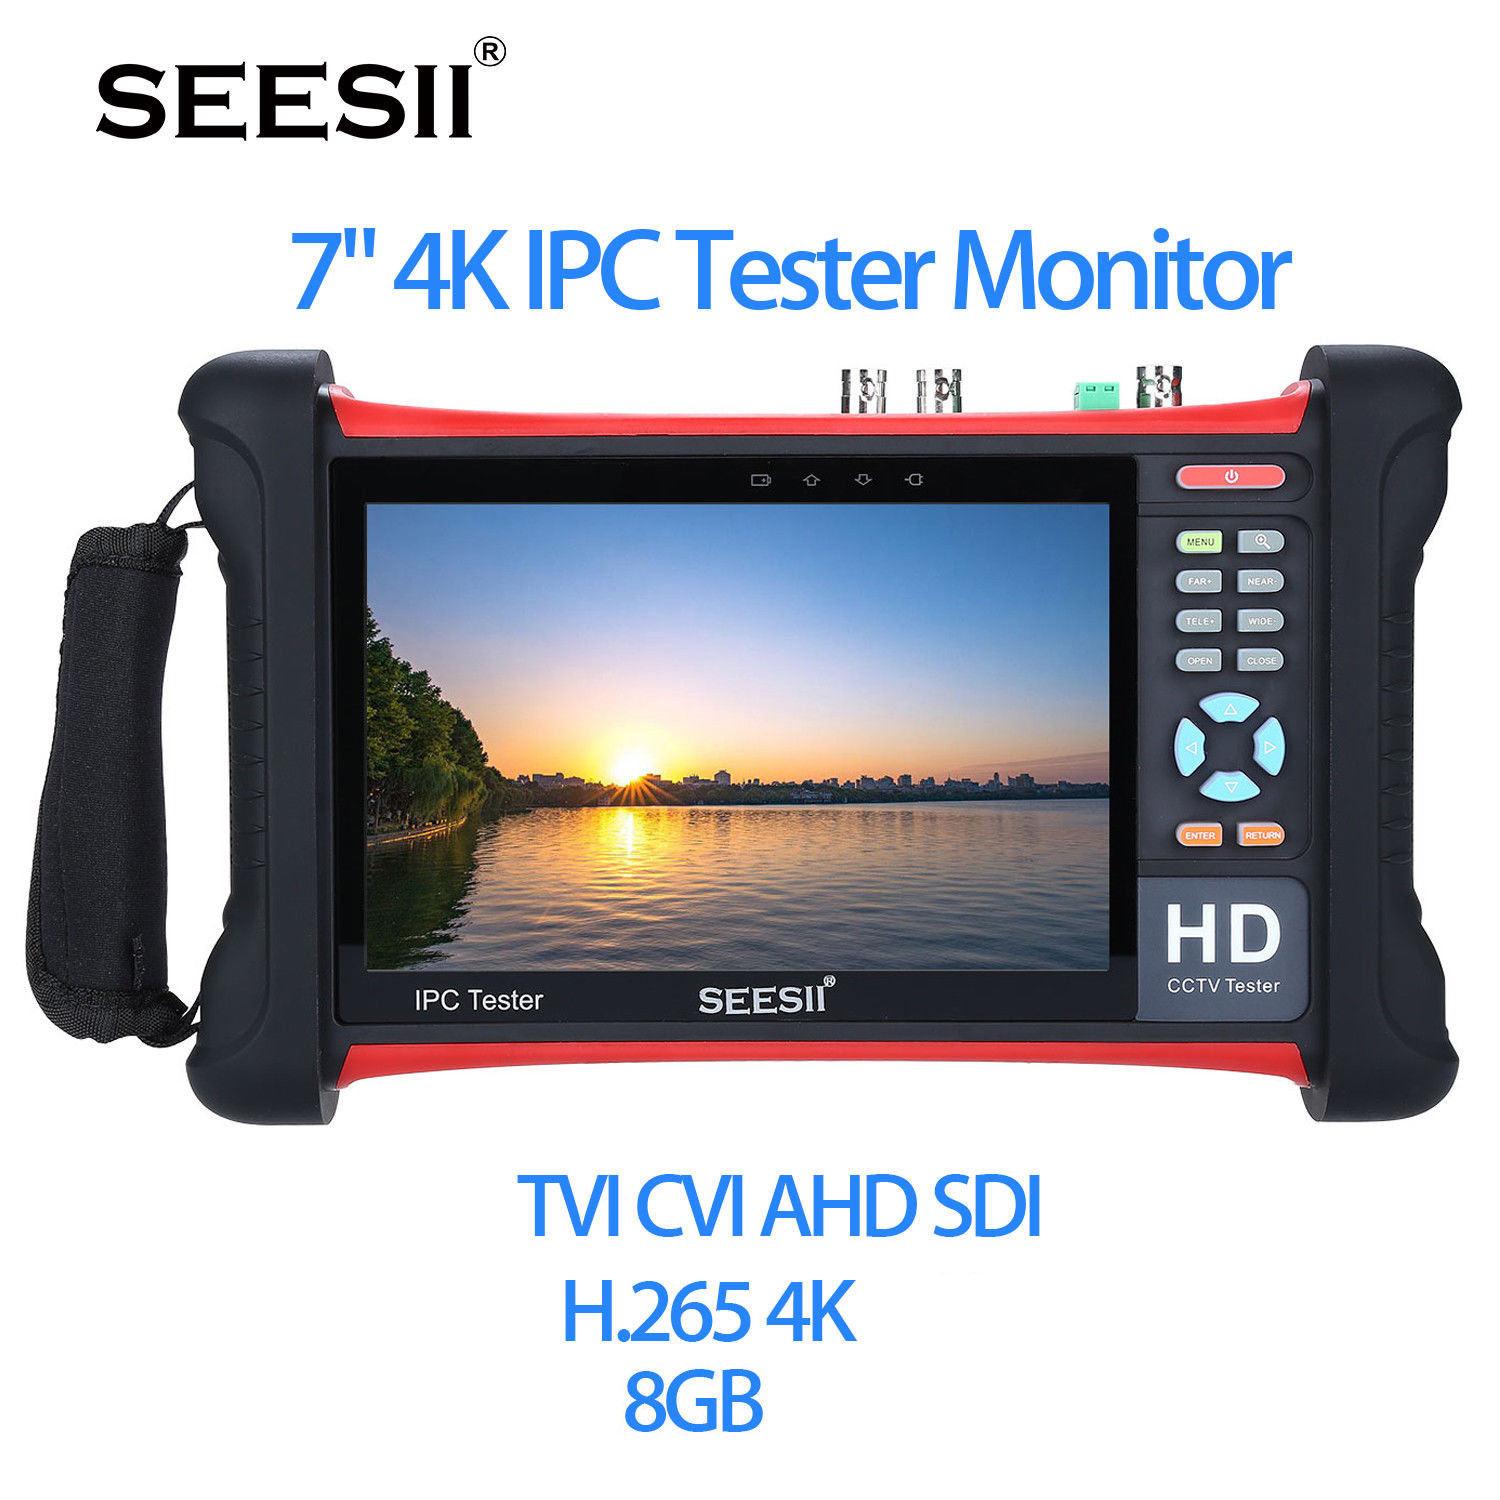 SEESII X7-ADHS4 7 Touch Screen 4K 1080P IPC Camera CCTV Retina Tester Monitor Wifi TVI CVI AHD SDI CVBS IP Discovery Analog ipc9300 ipc wifi ahd tvi cvi analog 4 3 touchscreen cctv tester for ip analog camera 1080p bnc network cable tester wifi 8gb